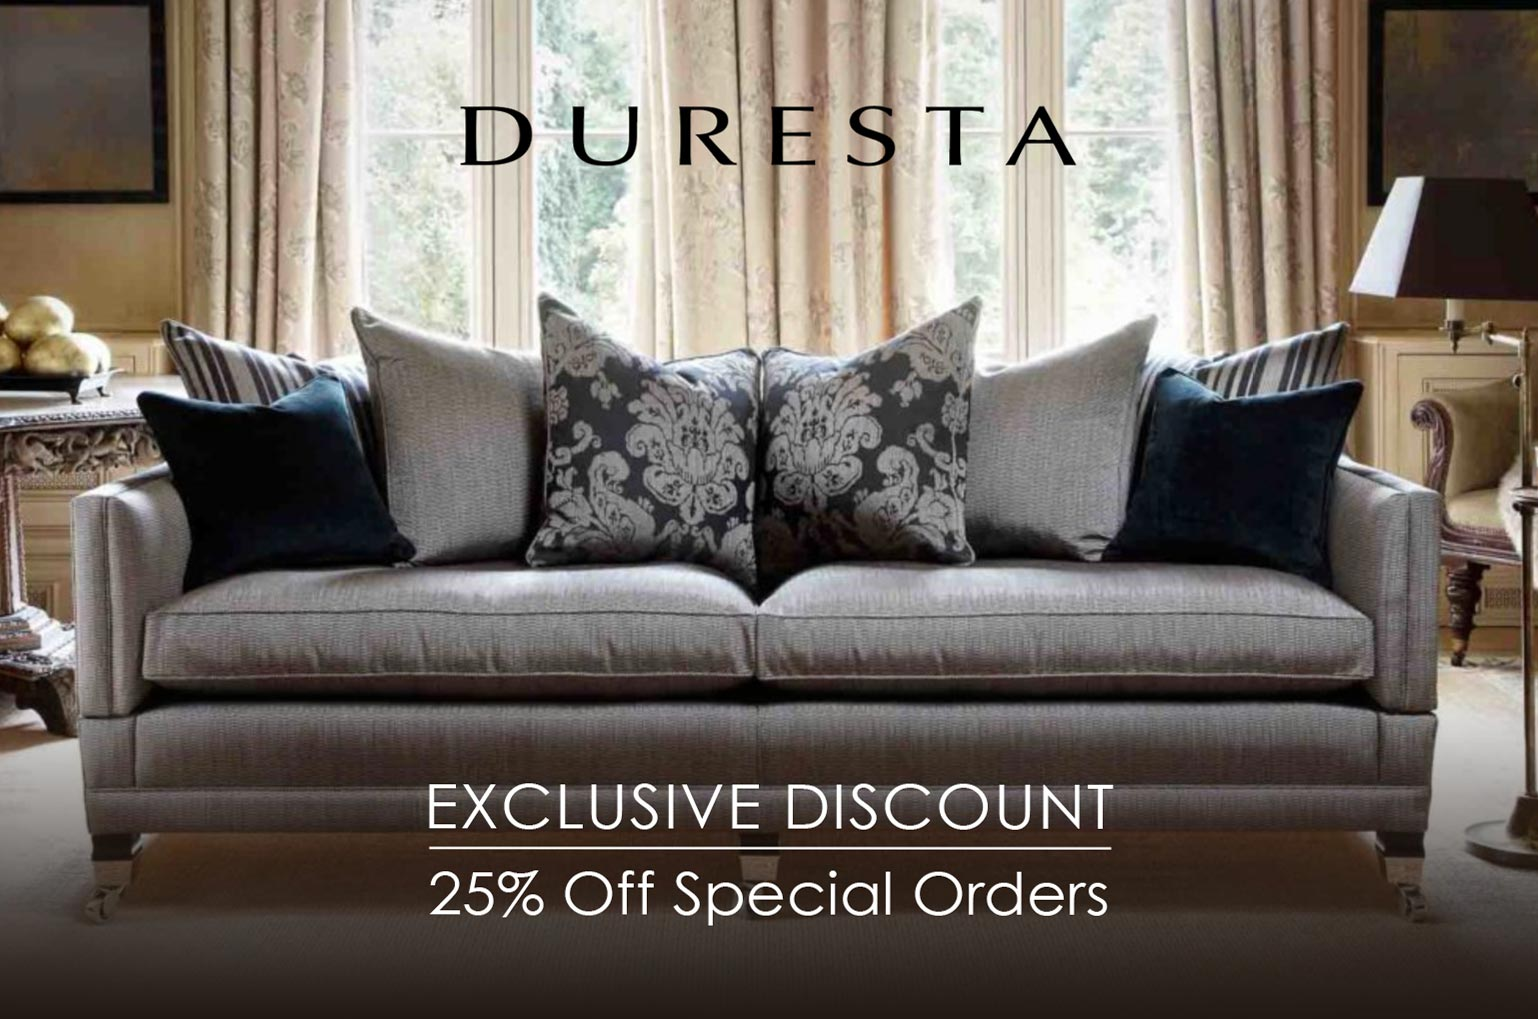 25% Off Duresta Special Orders